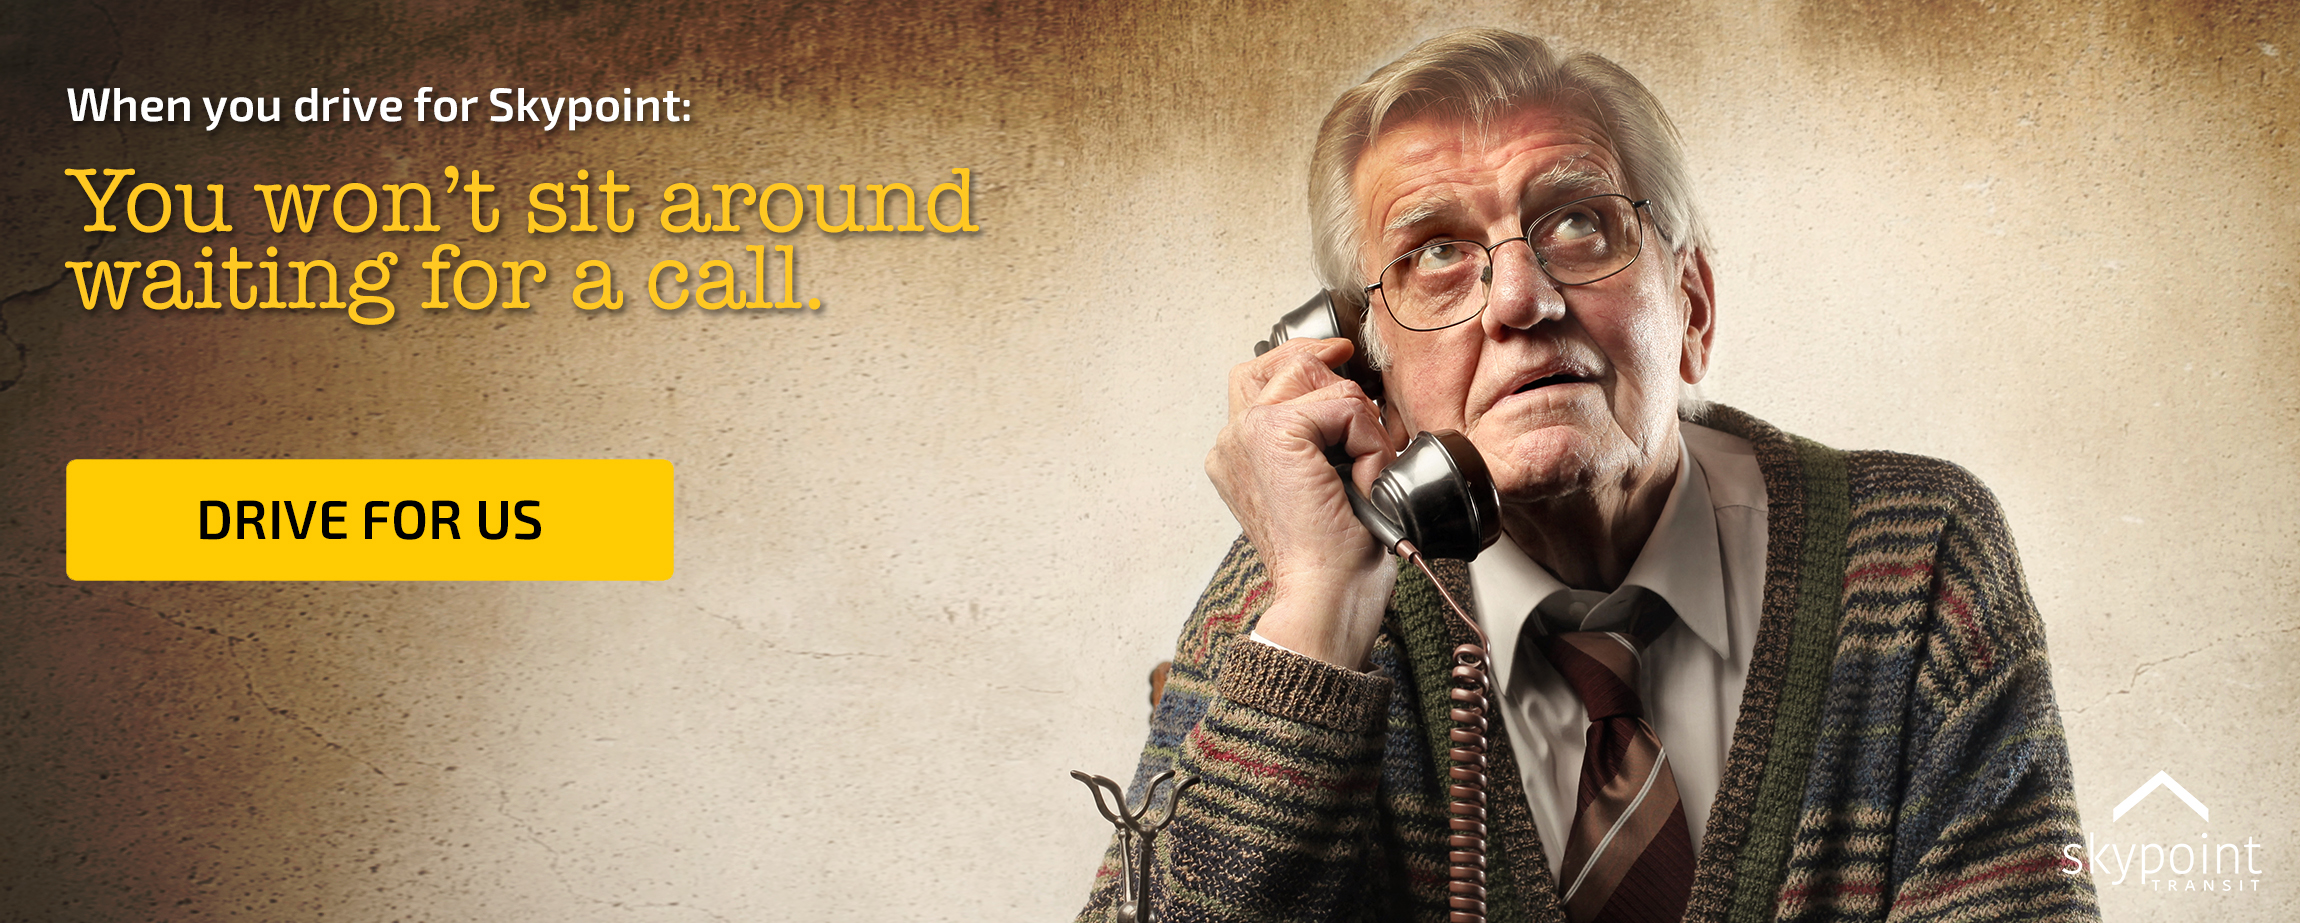 Homepage-Banners-Driving-For-Skypoint-Old-Man